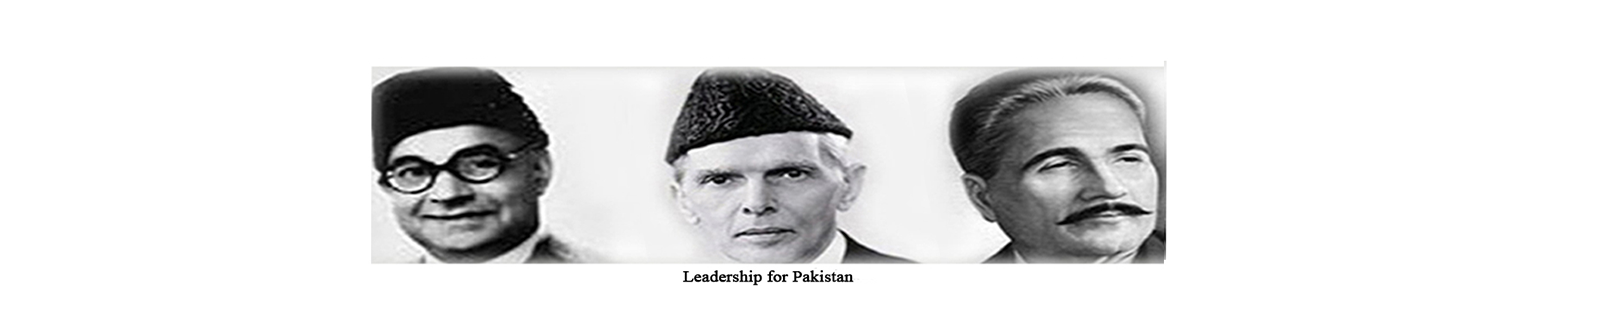 Leadership-For-Pakistan-Header-Image